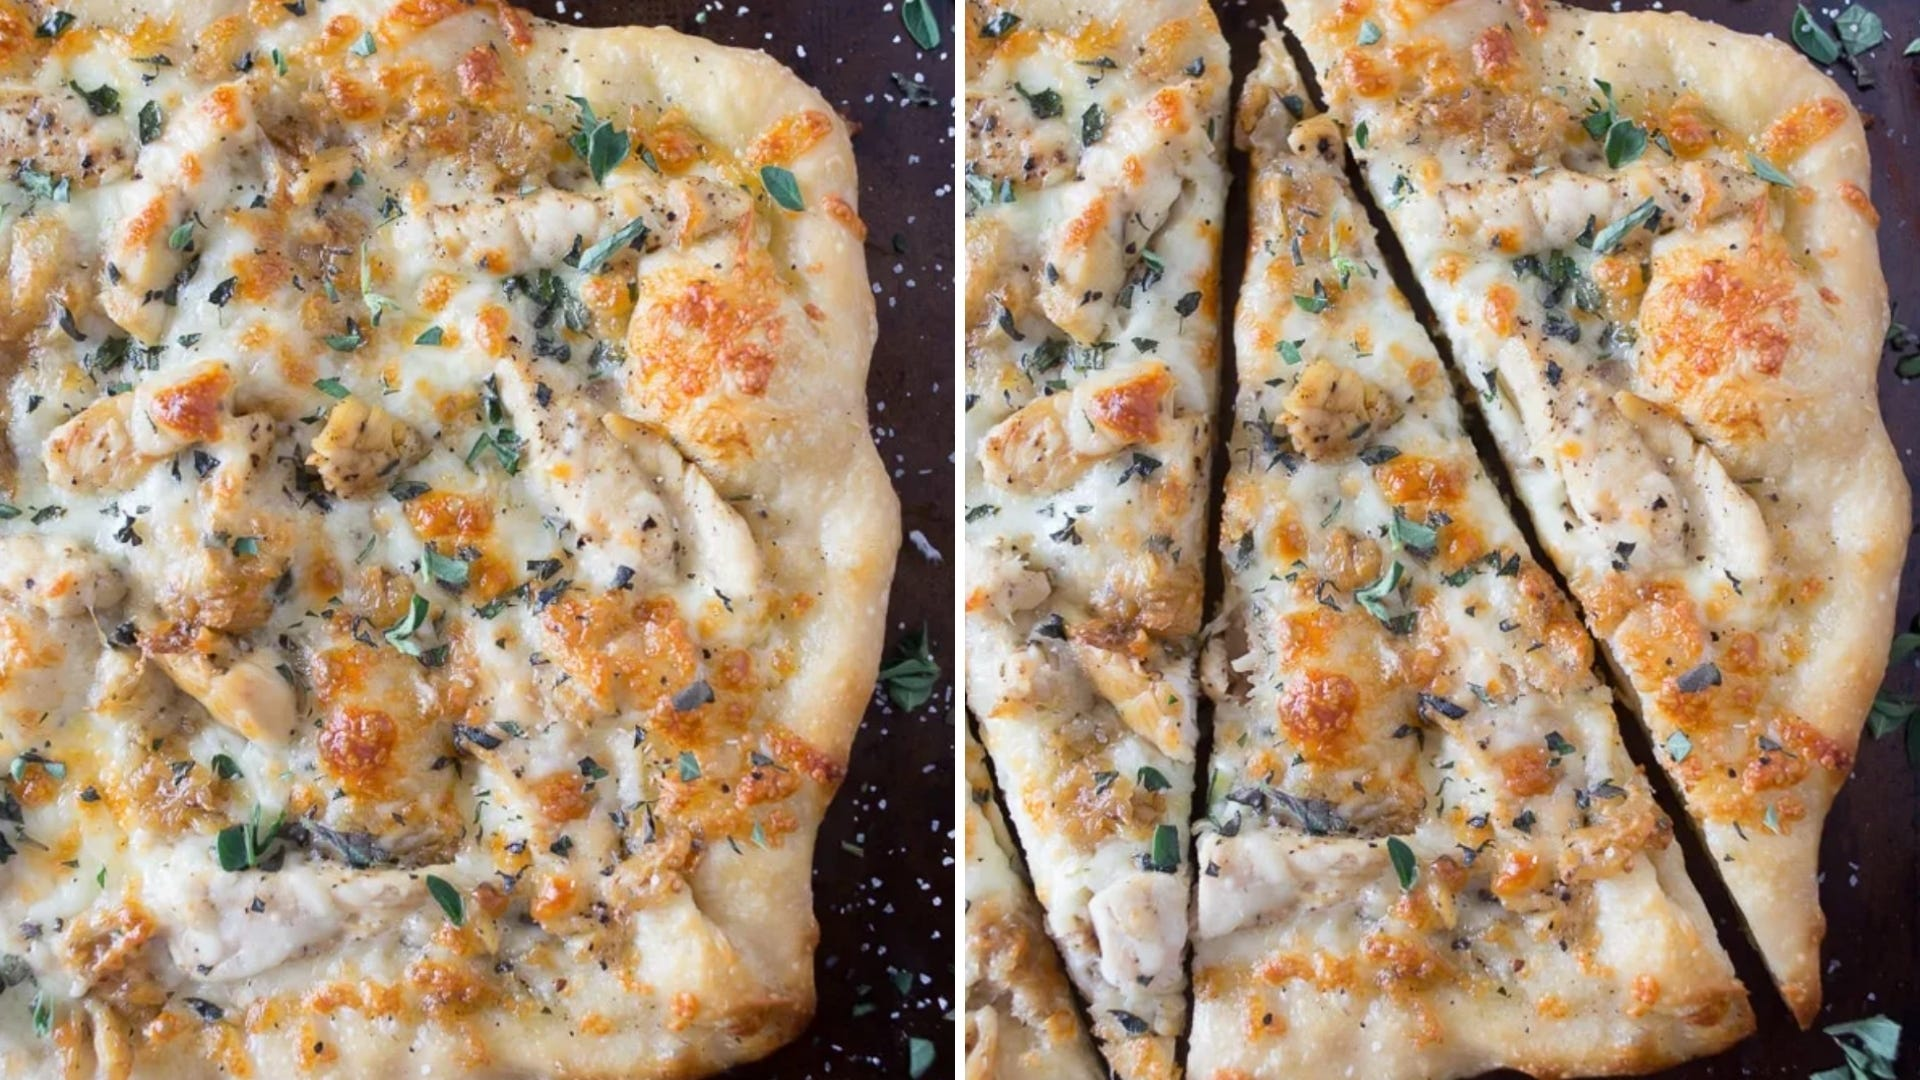 Two photos of white pizza with chicken and parsley.